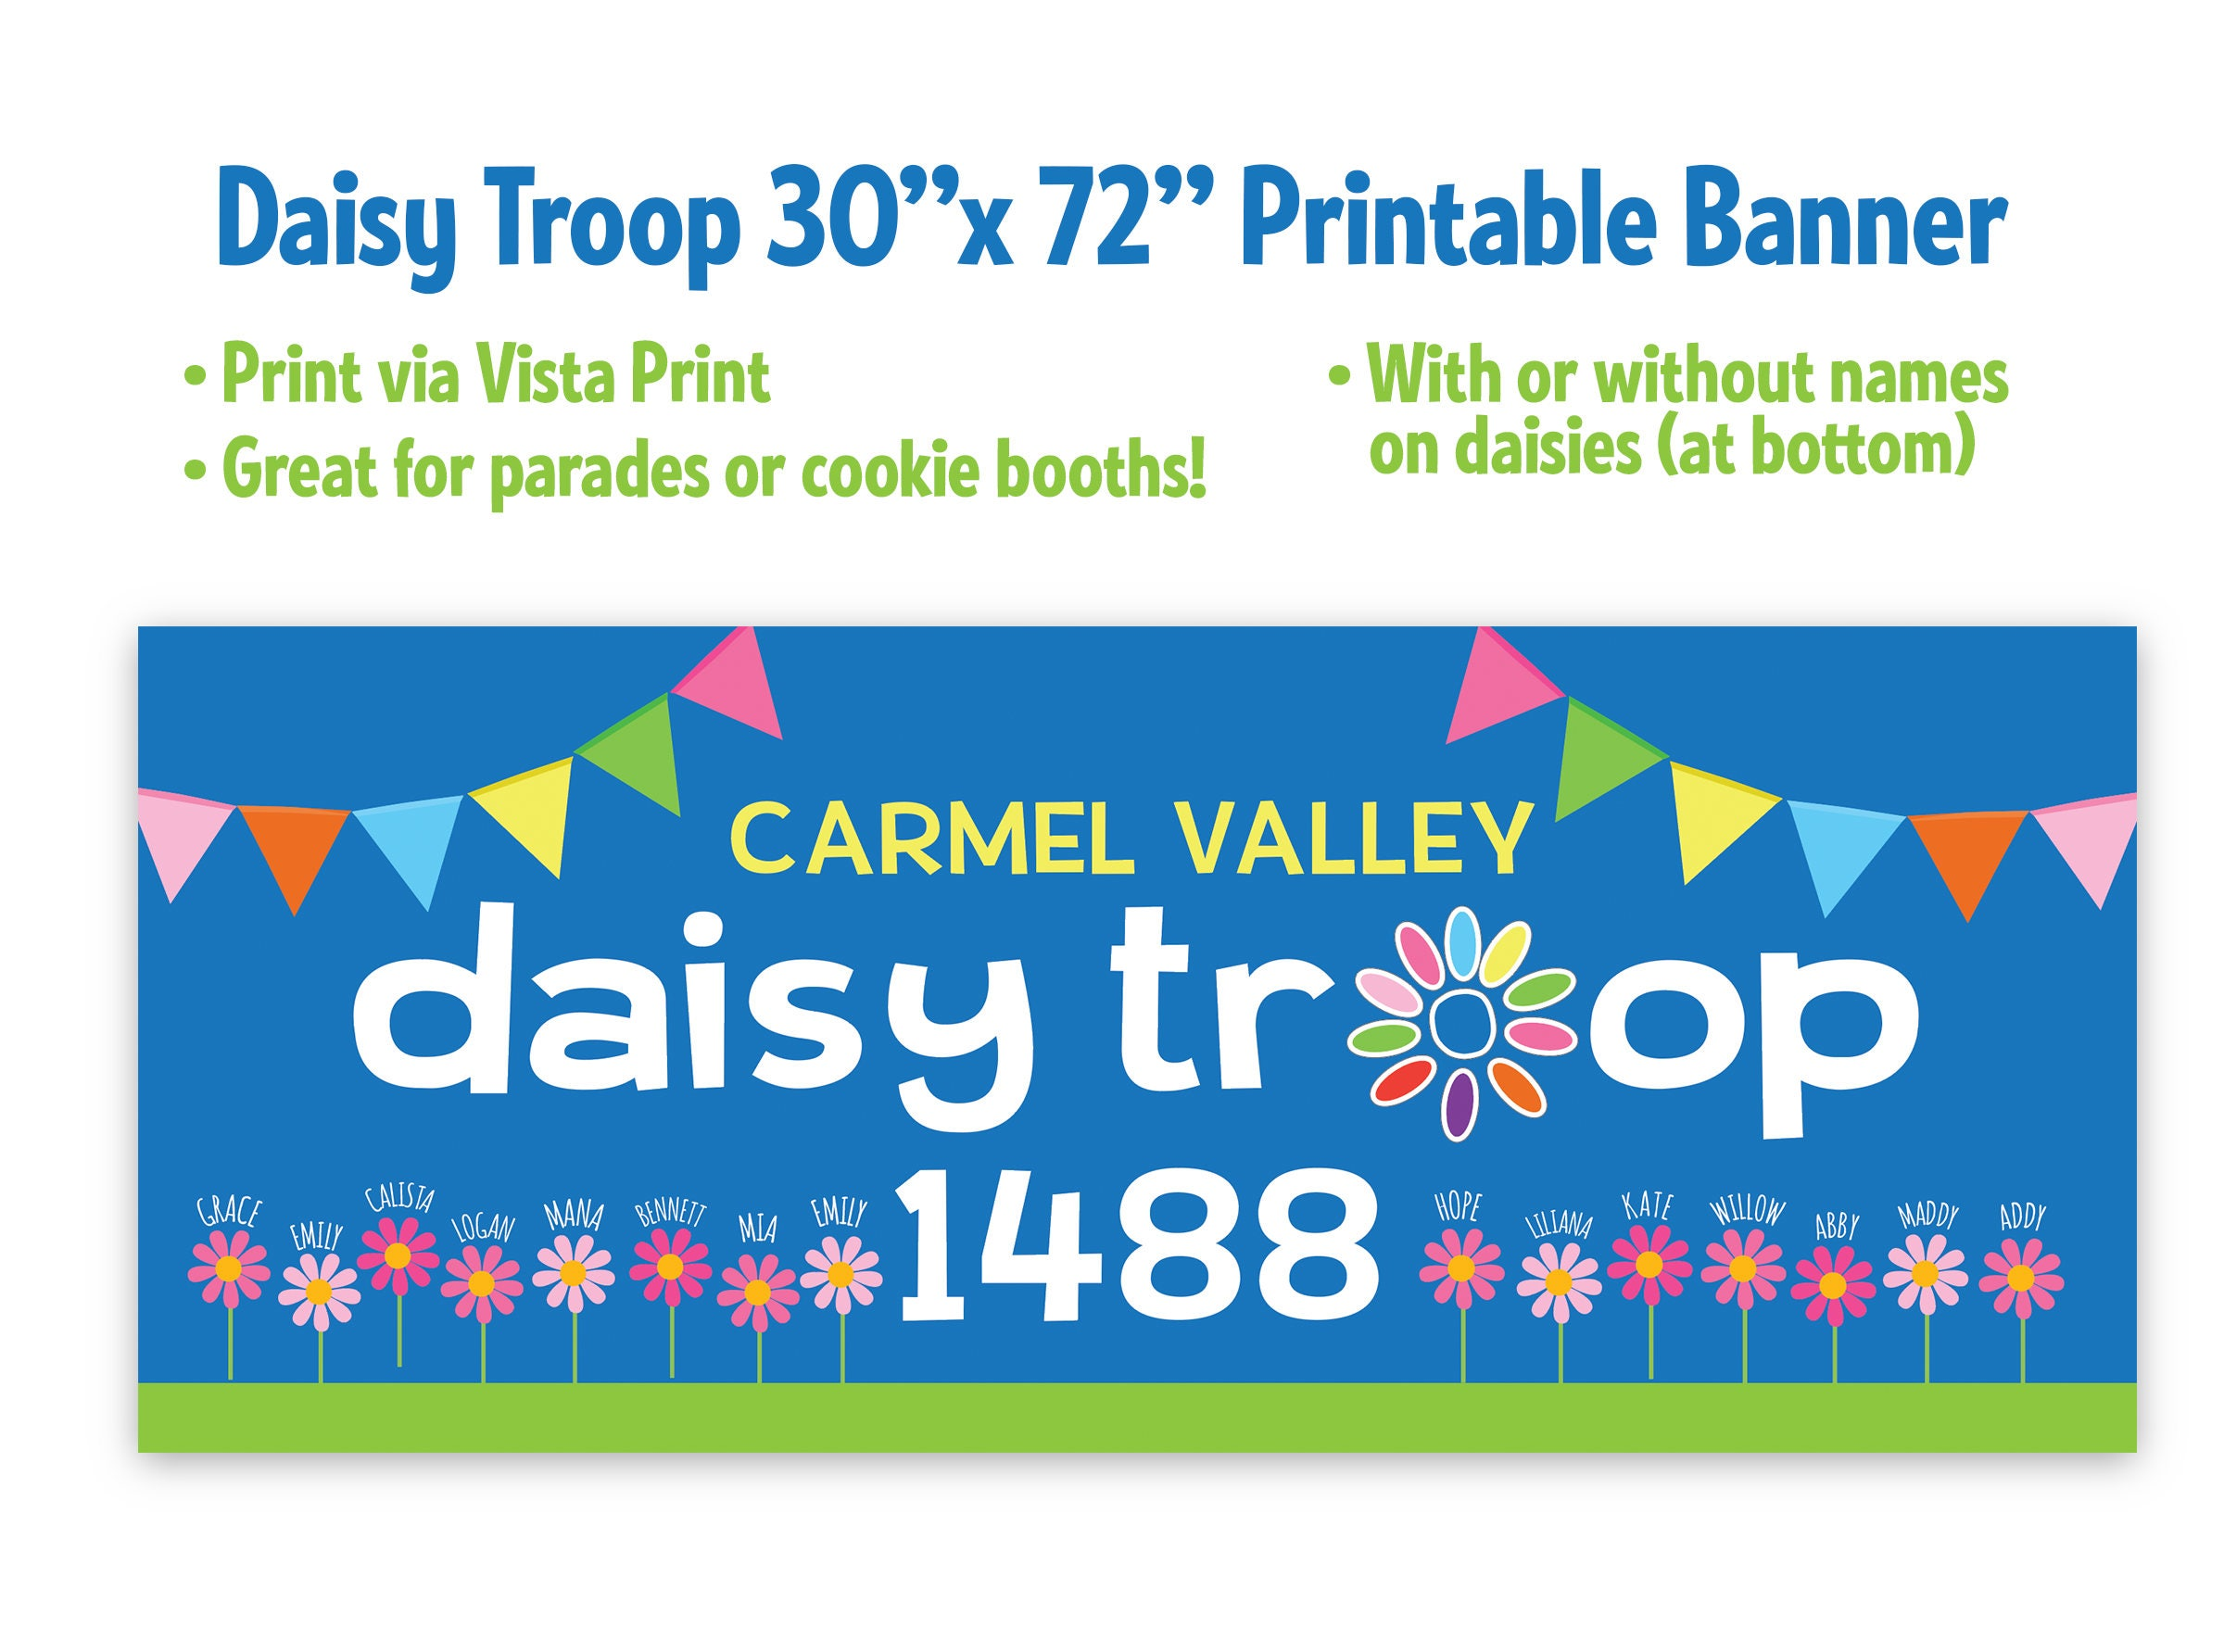 Printable Girl Scout Daisy Troop Banner 30 x 72